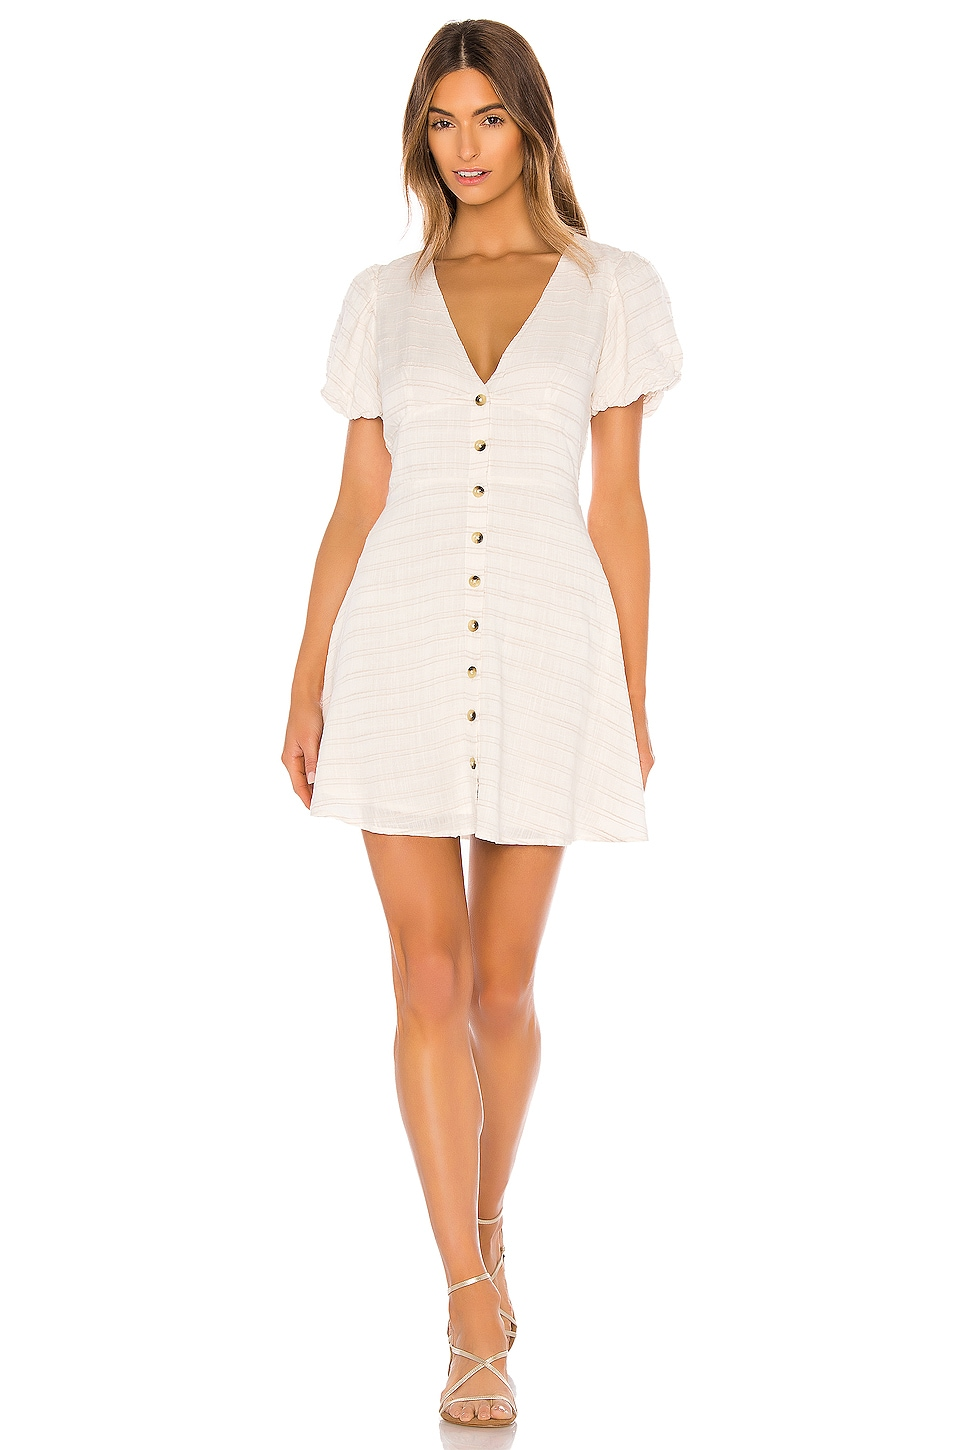 L*SPACE Sabrina Dress in Cream